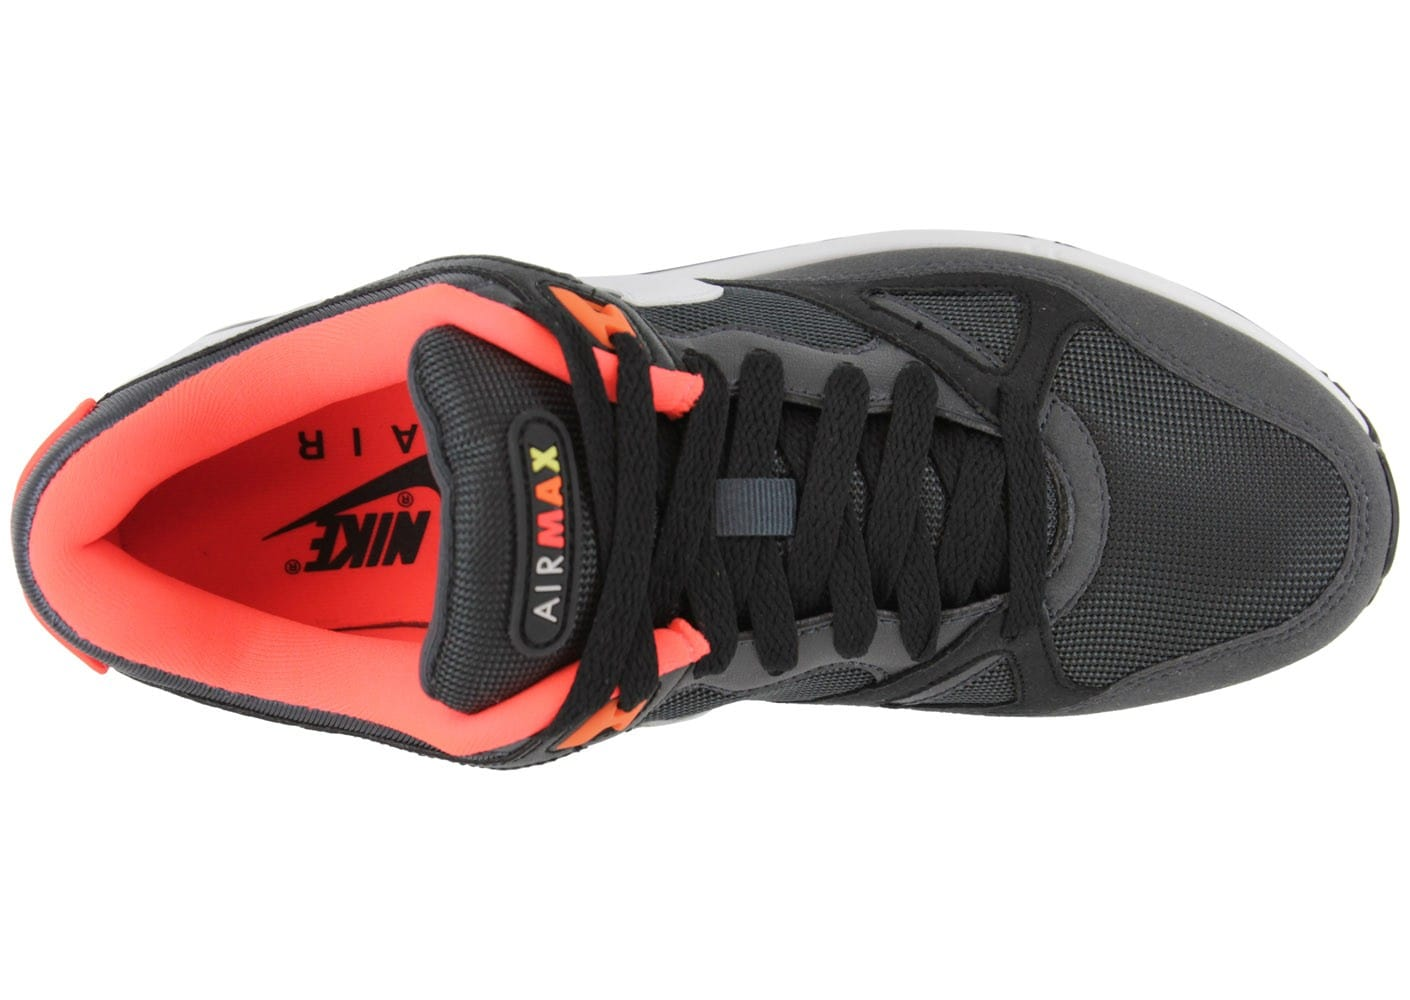 finest selection 1f681 f7740 Air homme Baskets Chaussures Chausport Max Nike Grise Span d1nFUx